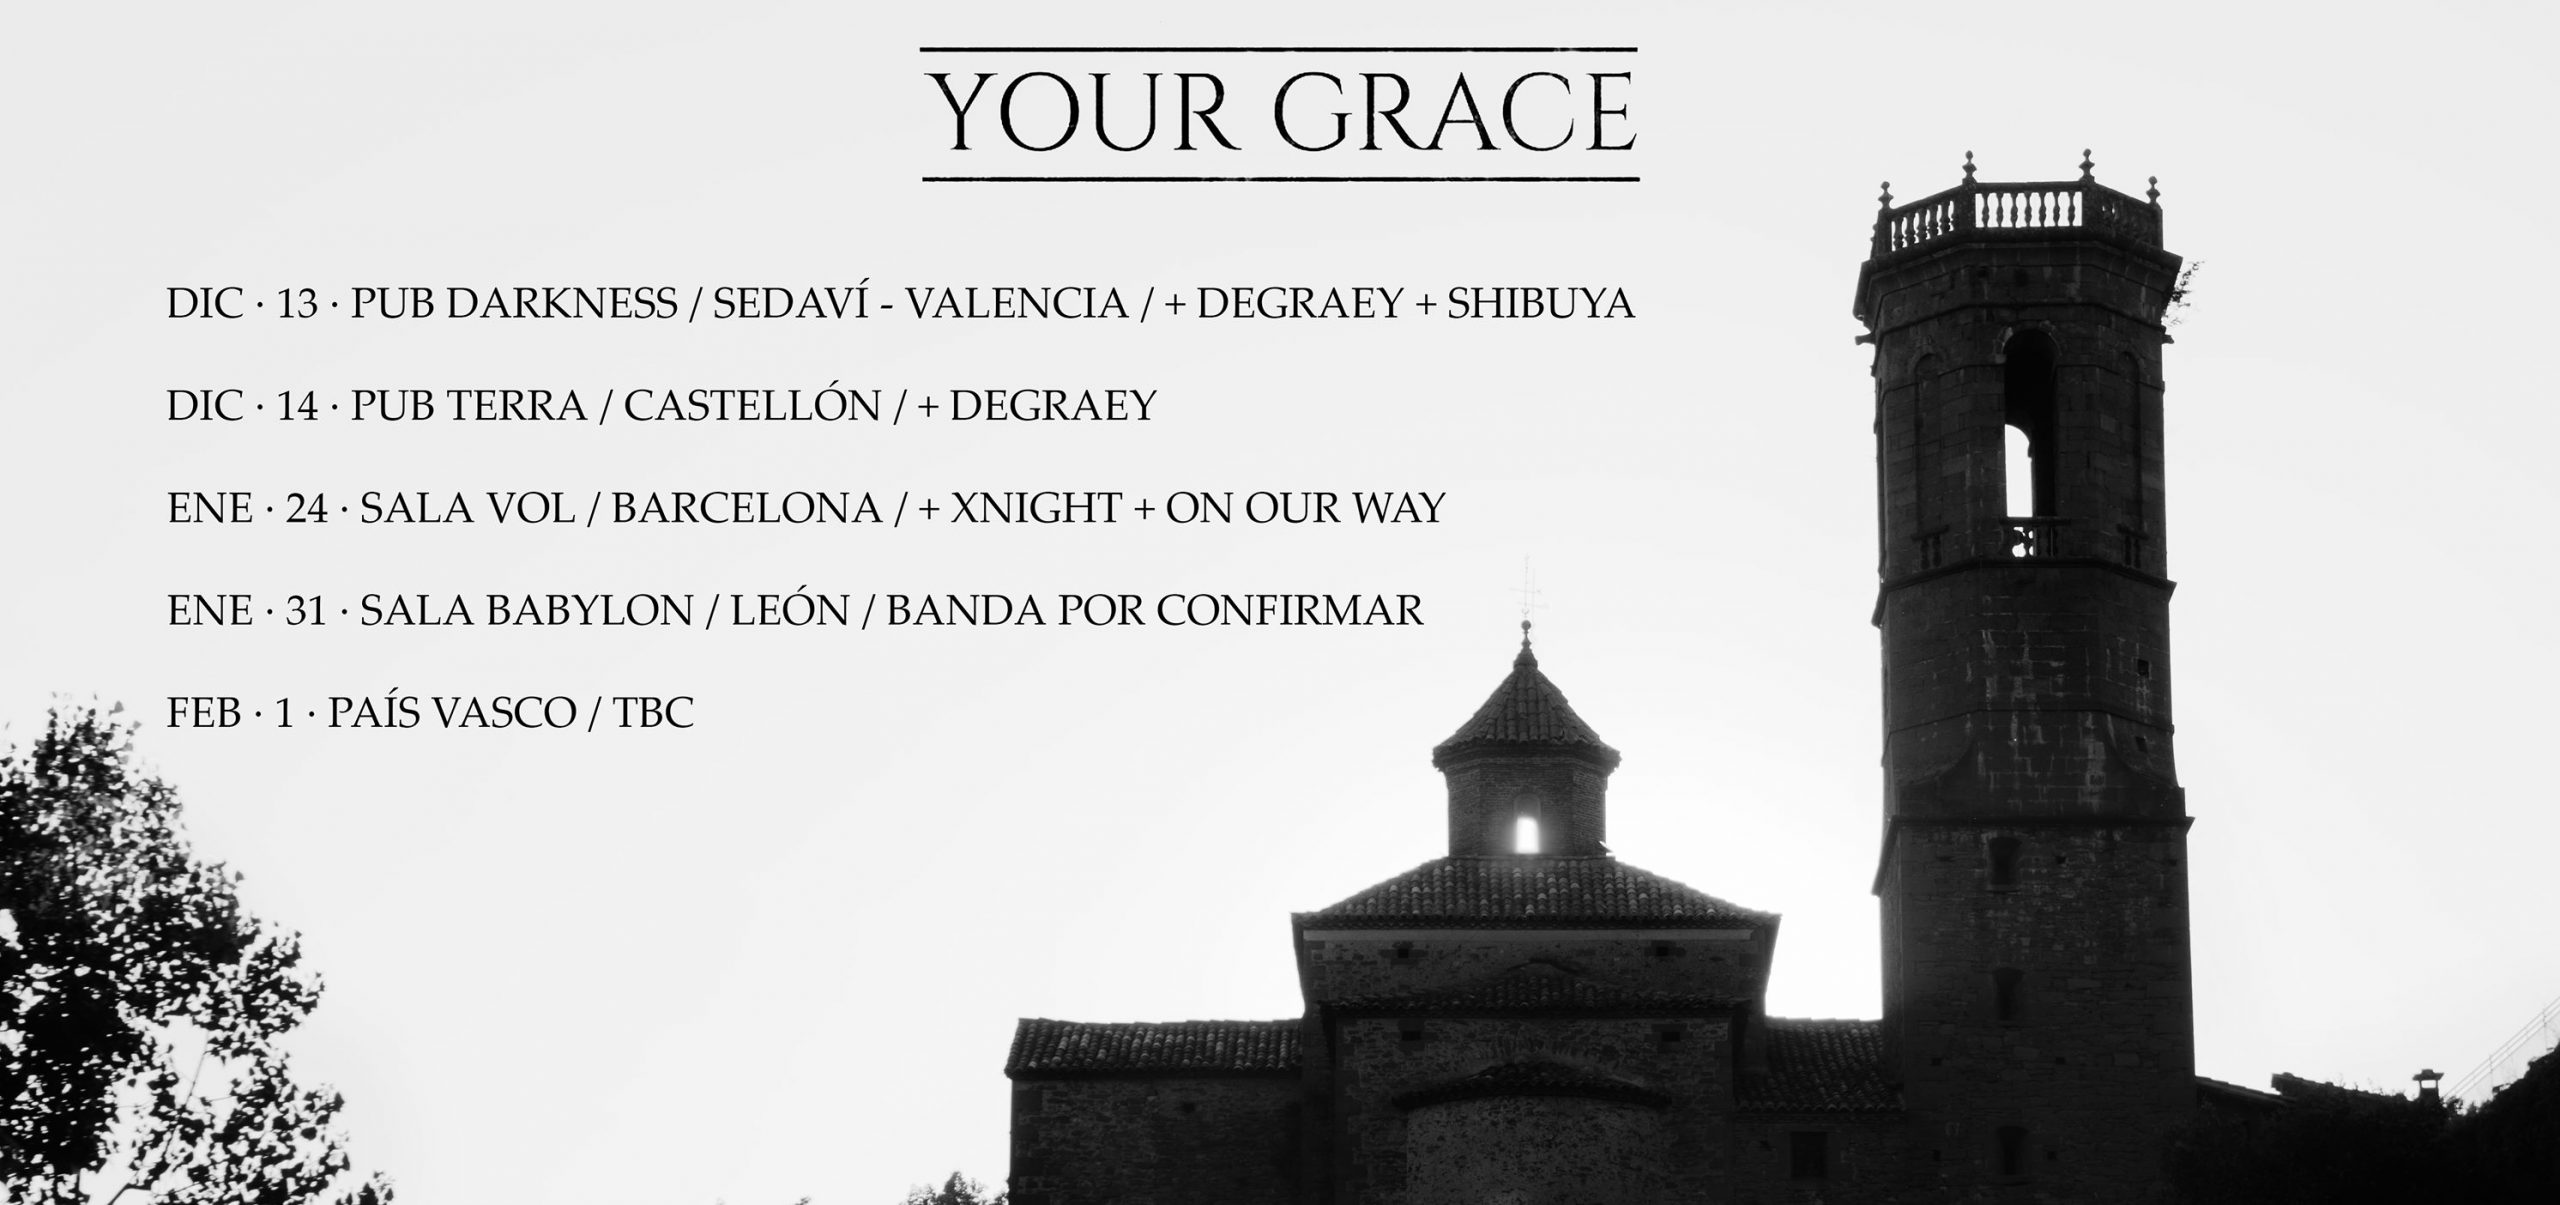 your grace tour 20192020